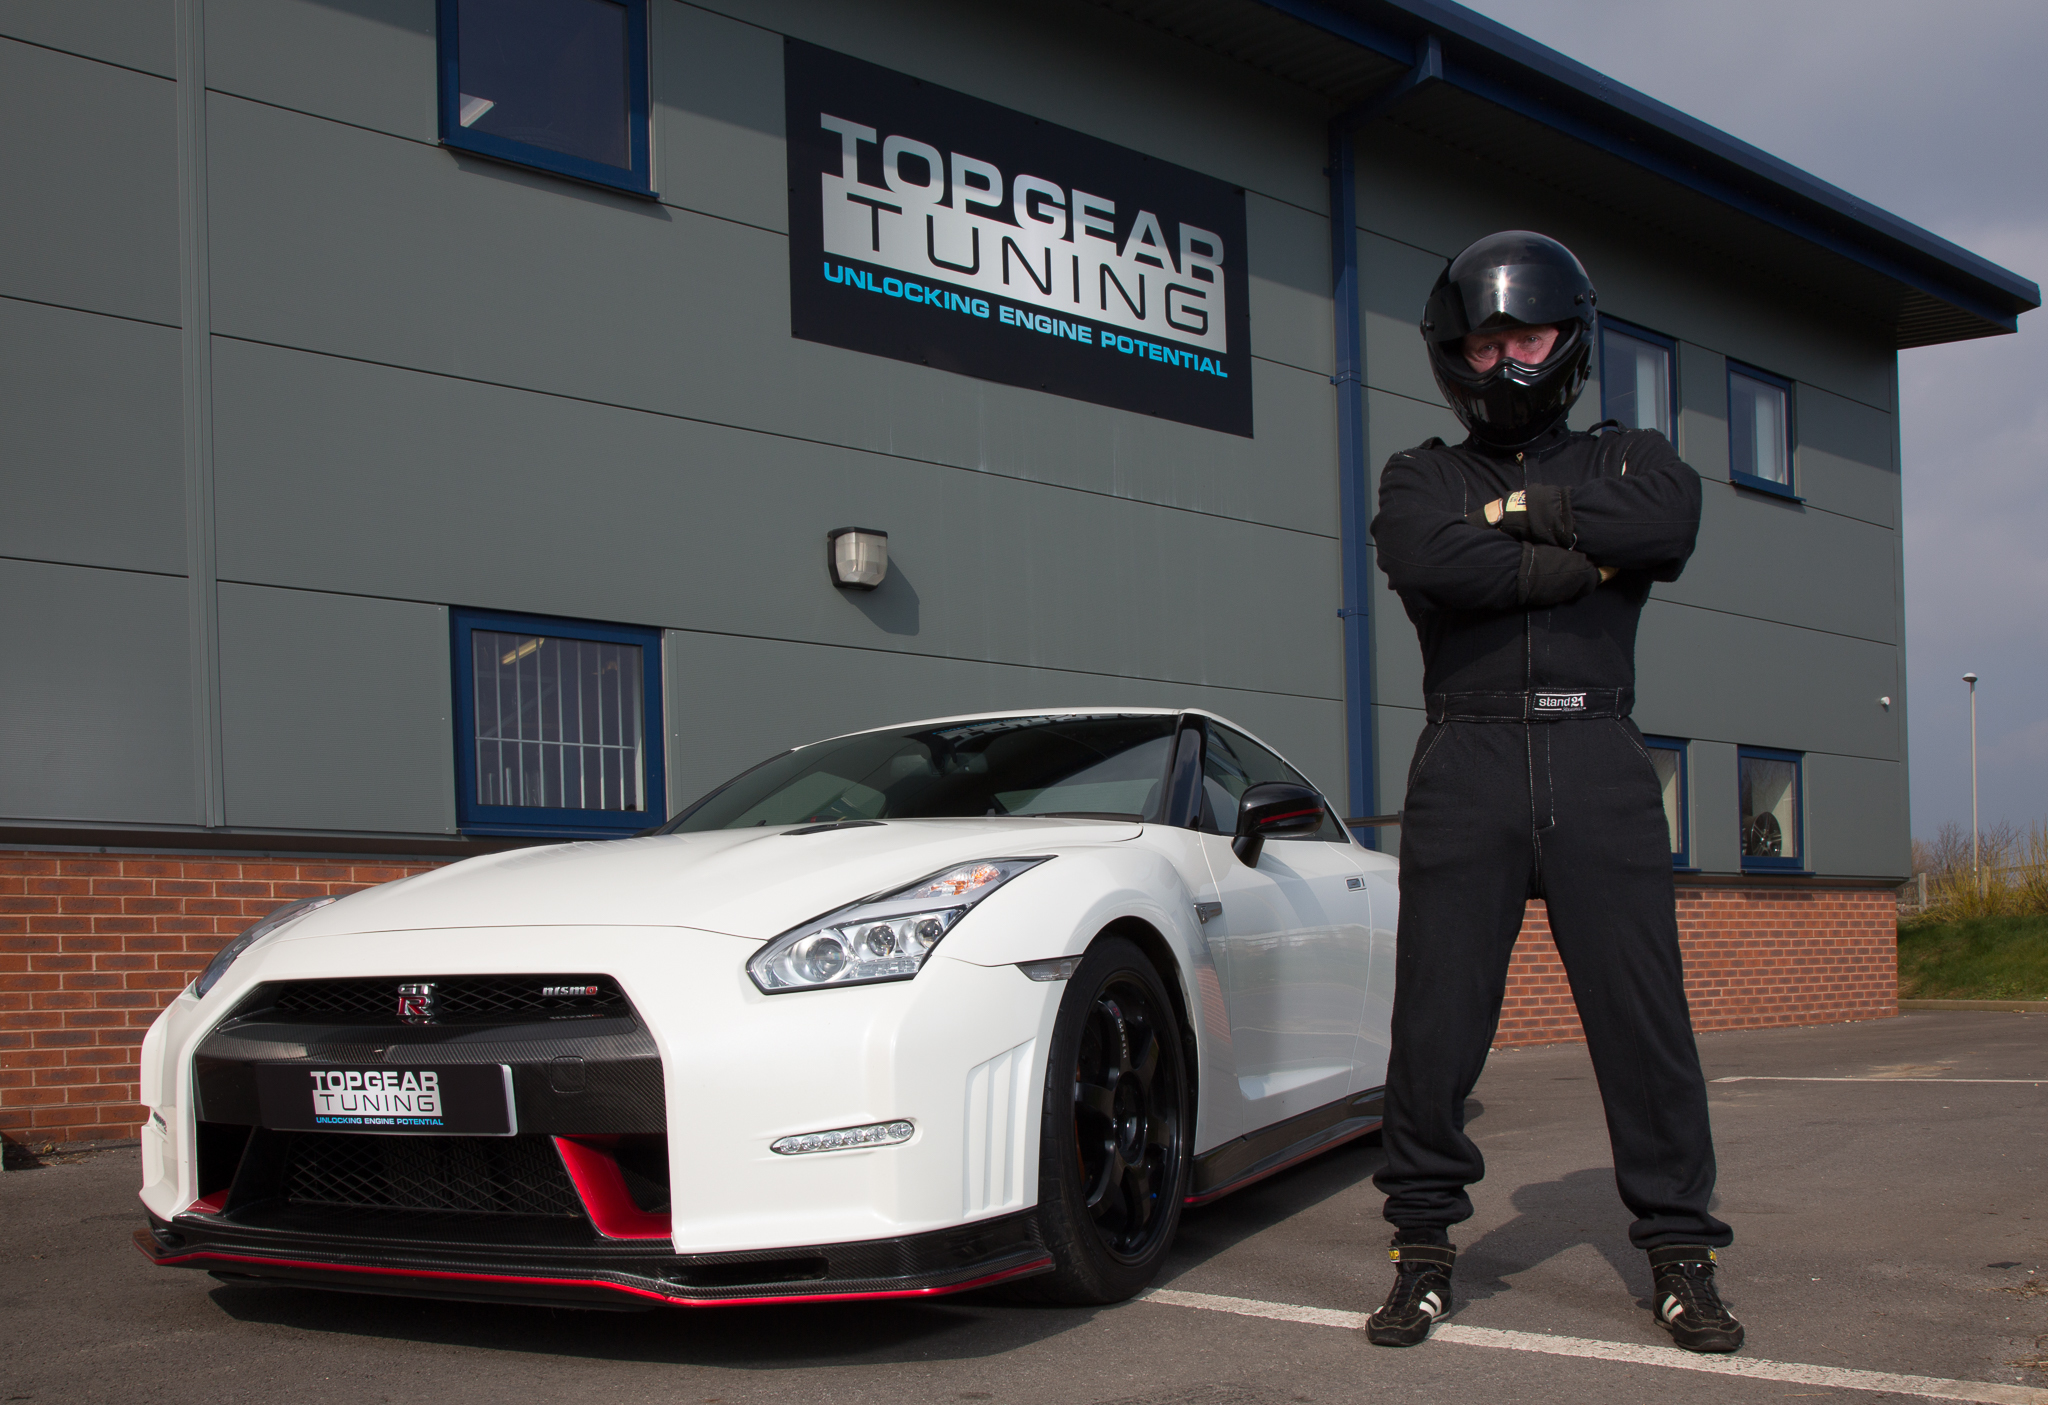 The Stig is heading to the north-east to take part in wacky races